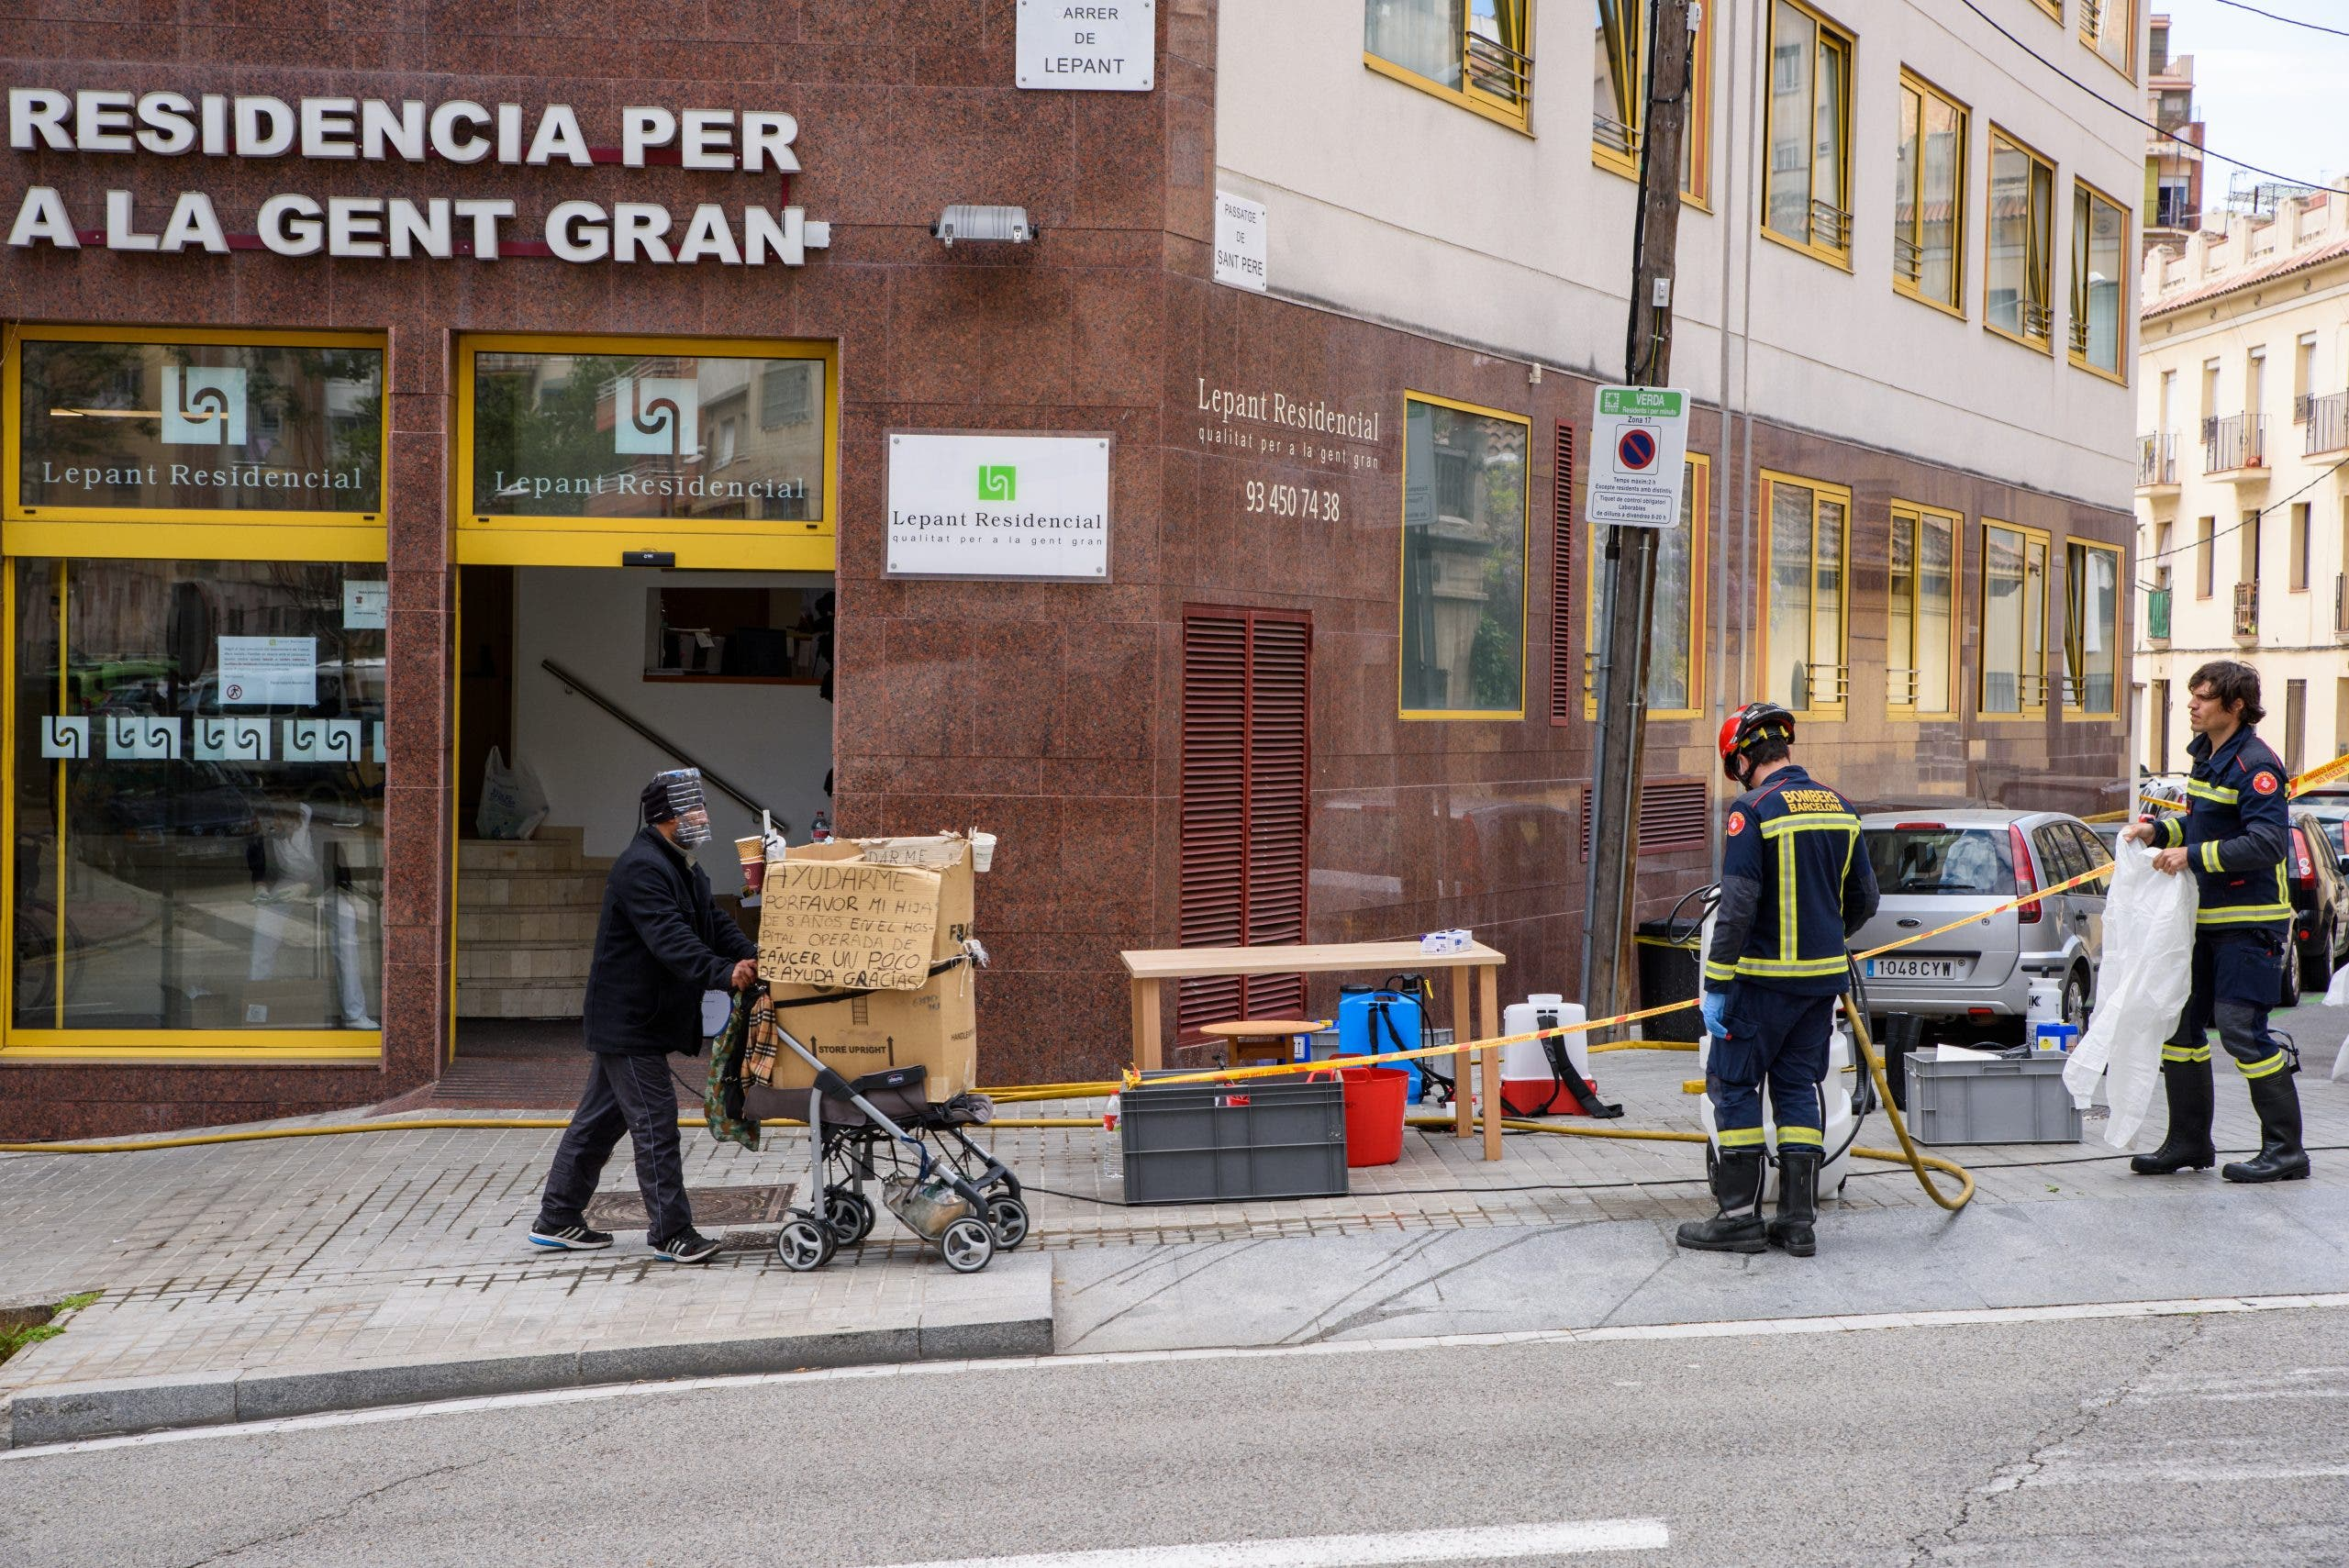 Homeless Man Walks Past Bomberos Preparing To Disinfect A Care Home 1